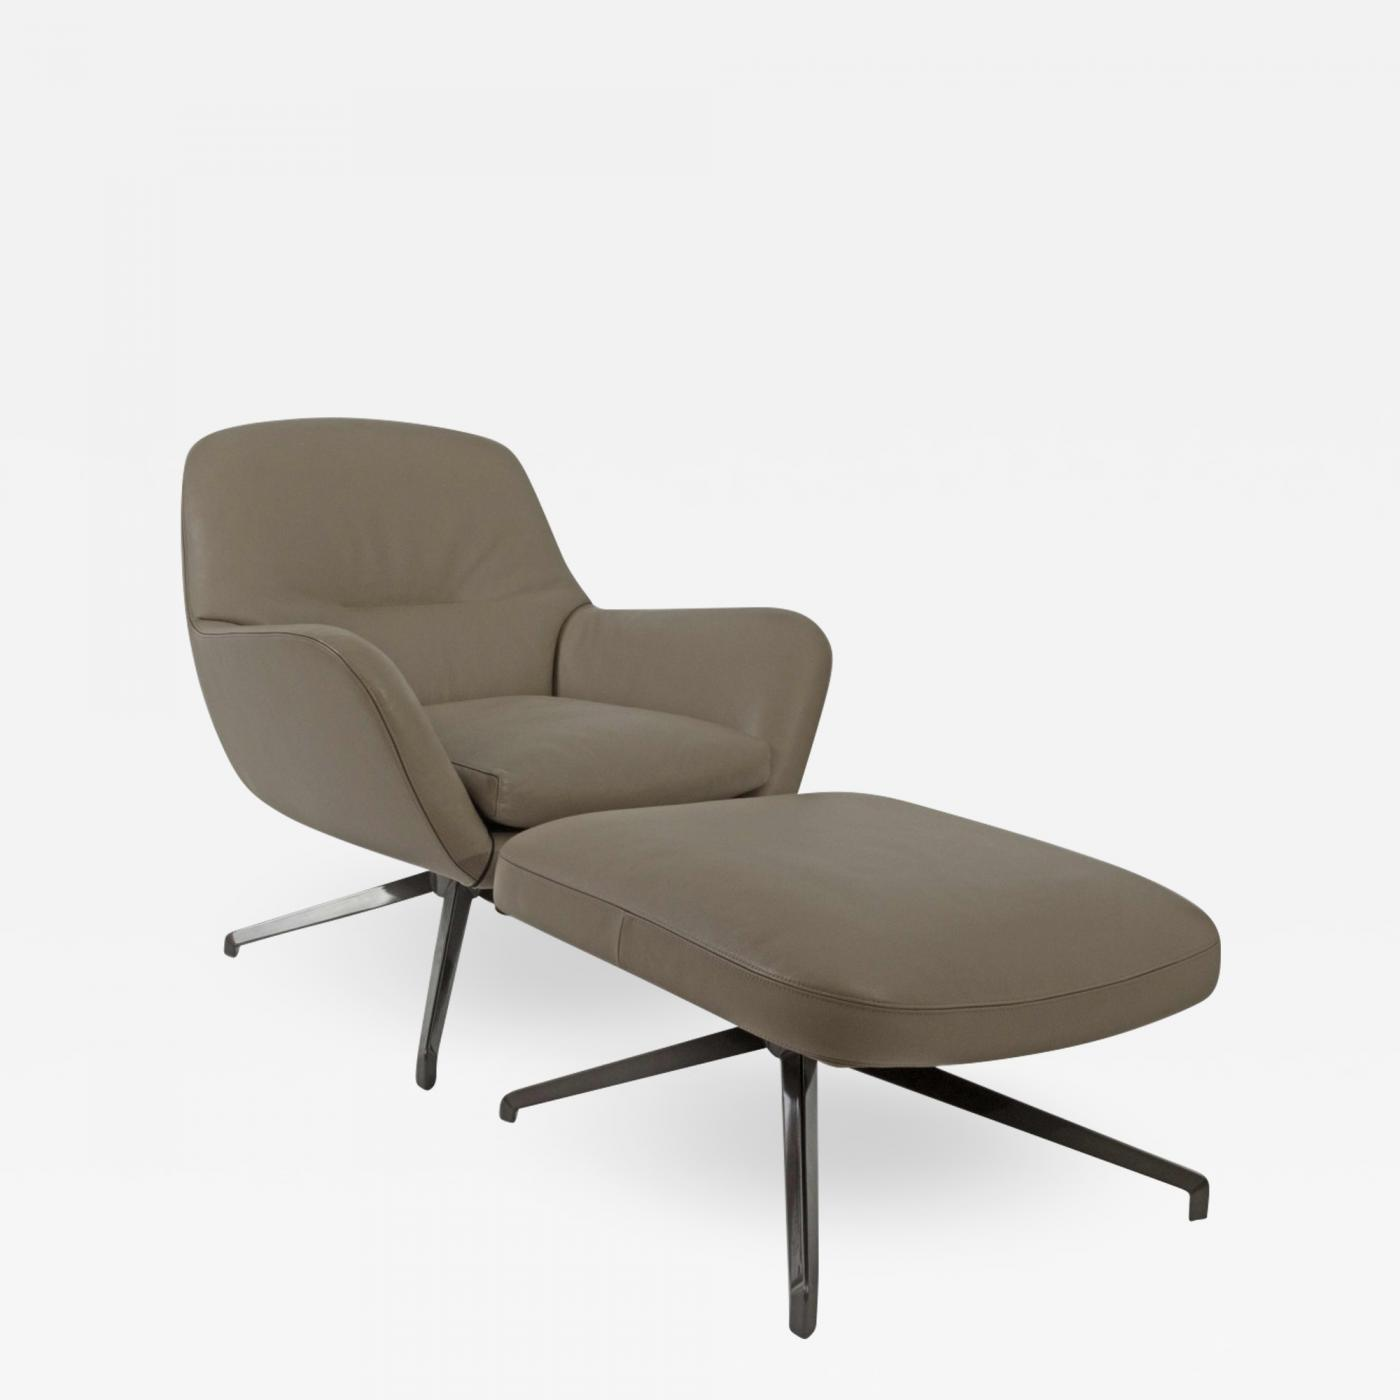 Chairs With Ottoman Rodolfo Dordoni Rodolfo Dordoni Minotti Jensen Swivel Chair Ottoman